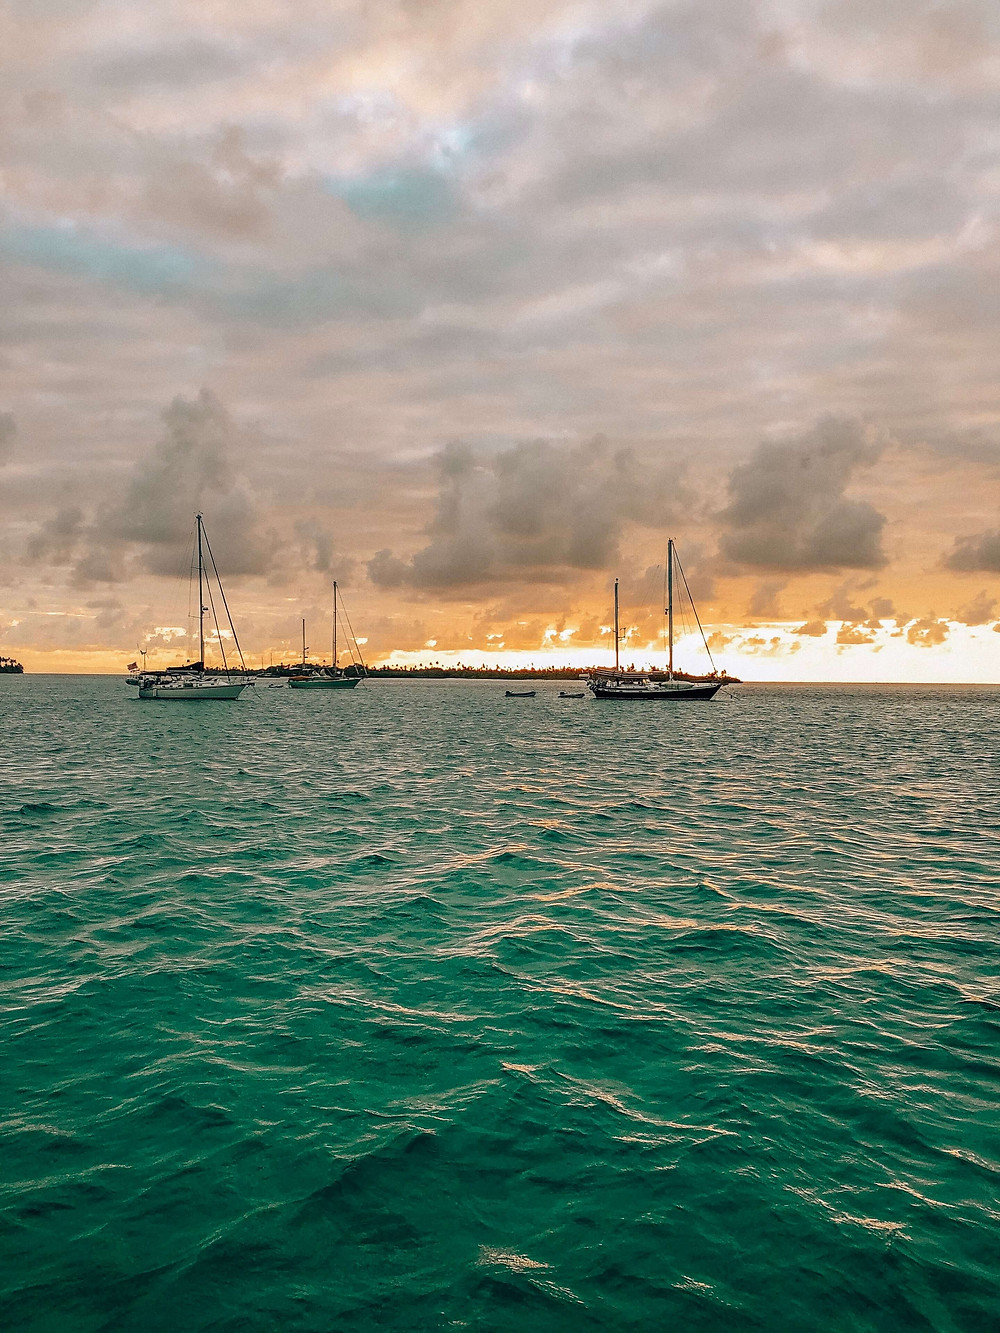 Fiery sunset in San Blas islands of Panama with sailboats